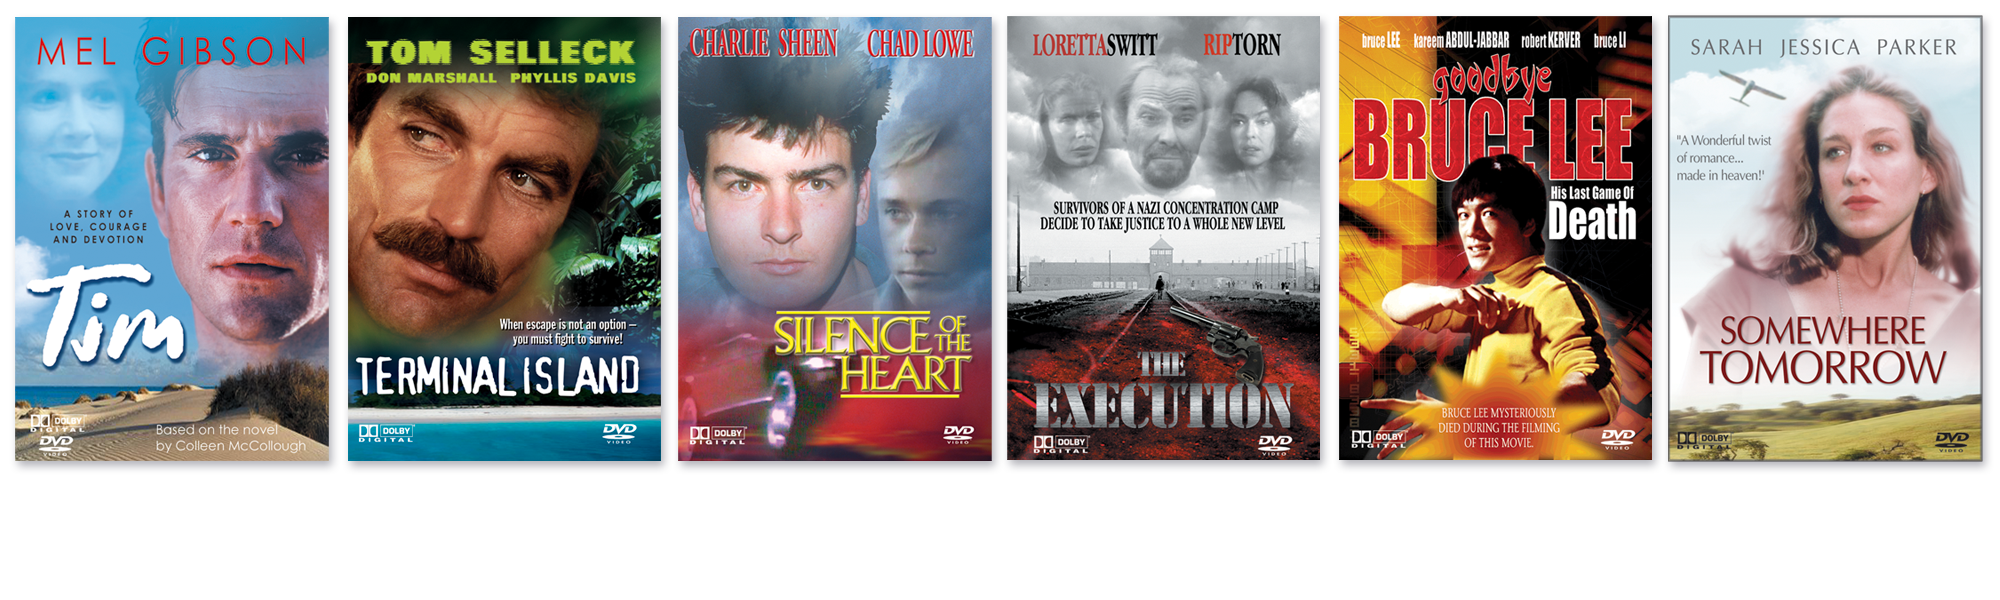 Christie Lee Associates DVD Covers